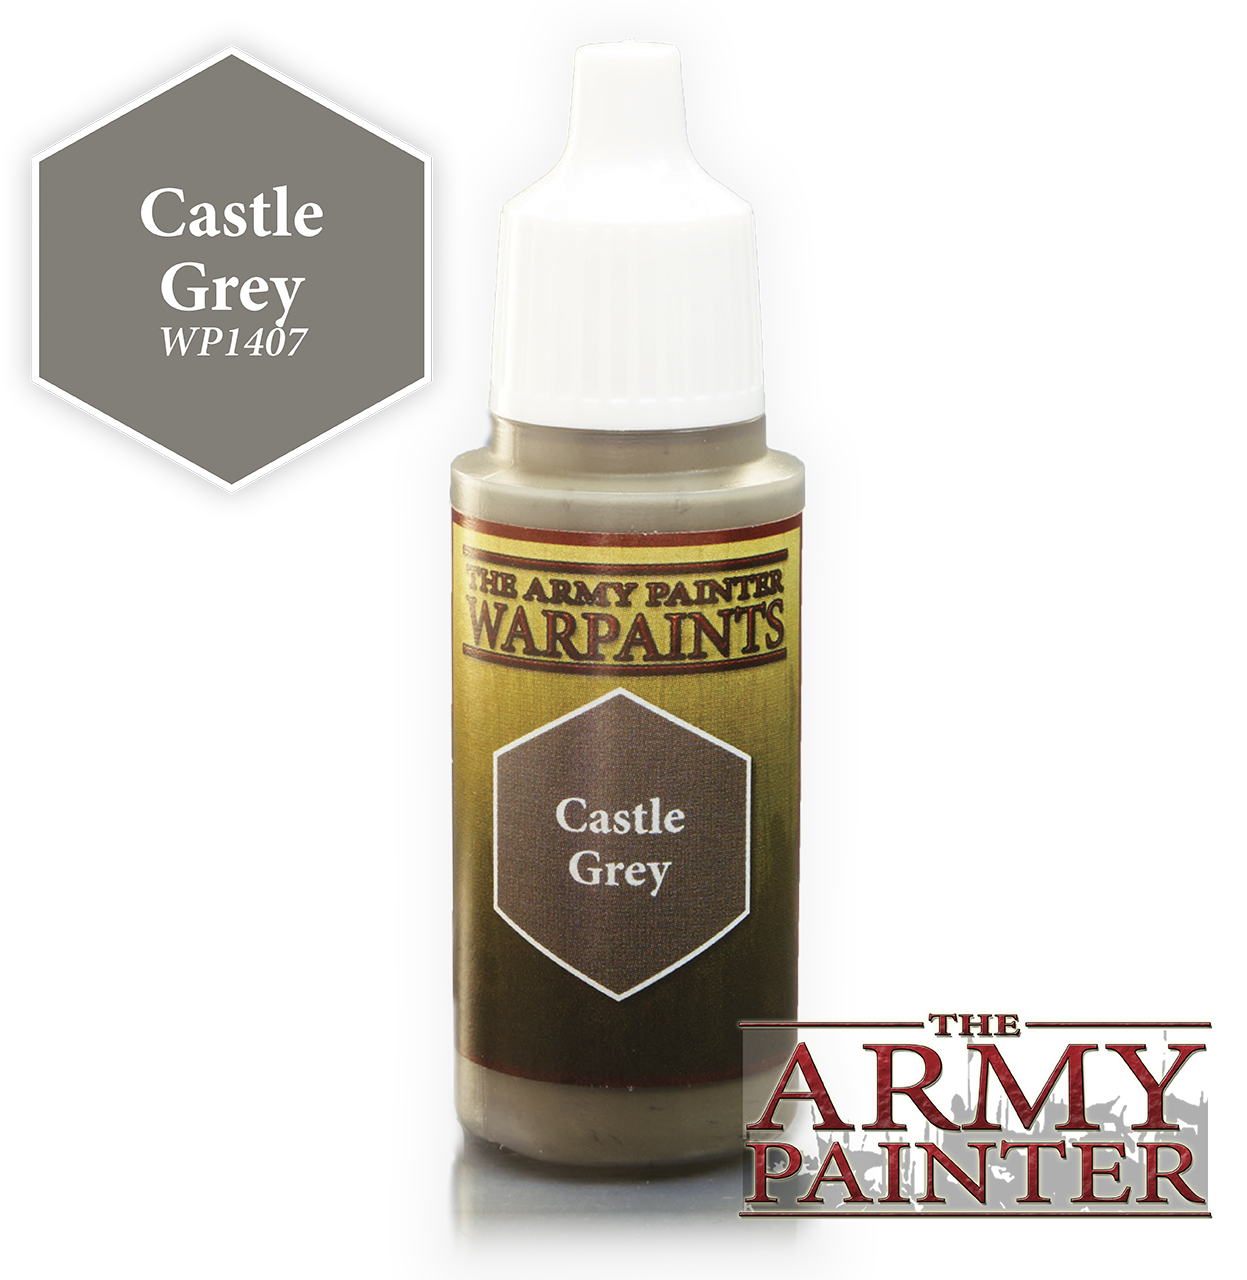 Castle Grey - Army Painter Warpaints WP1407